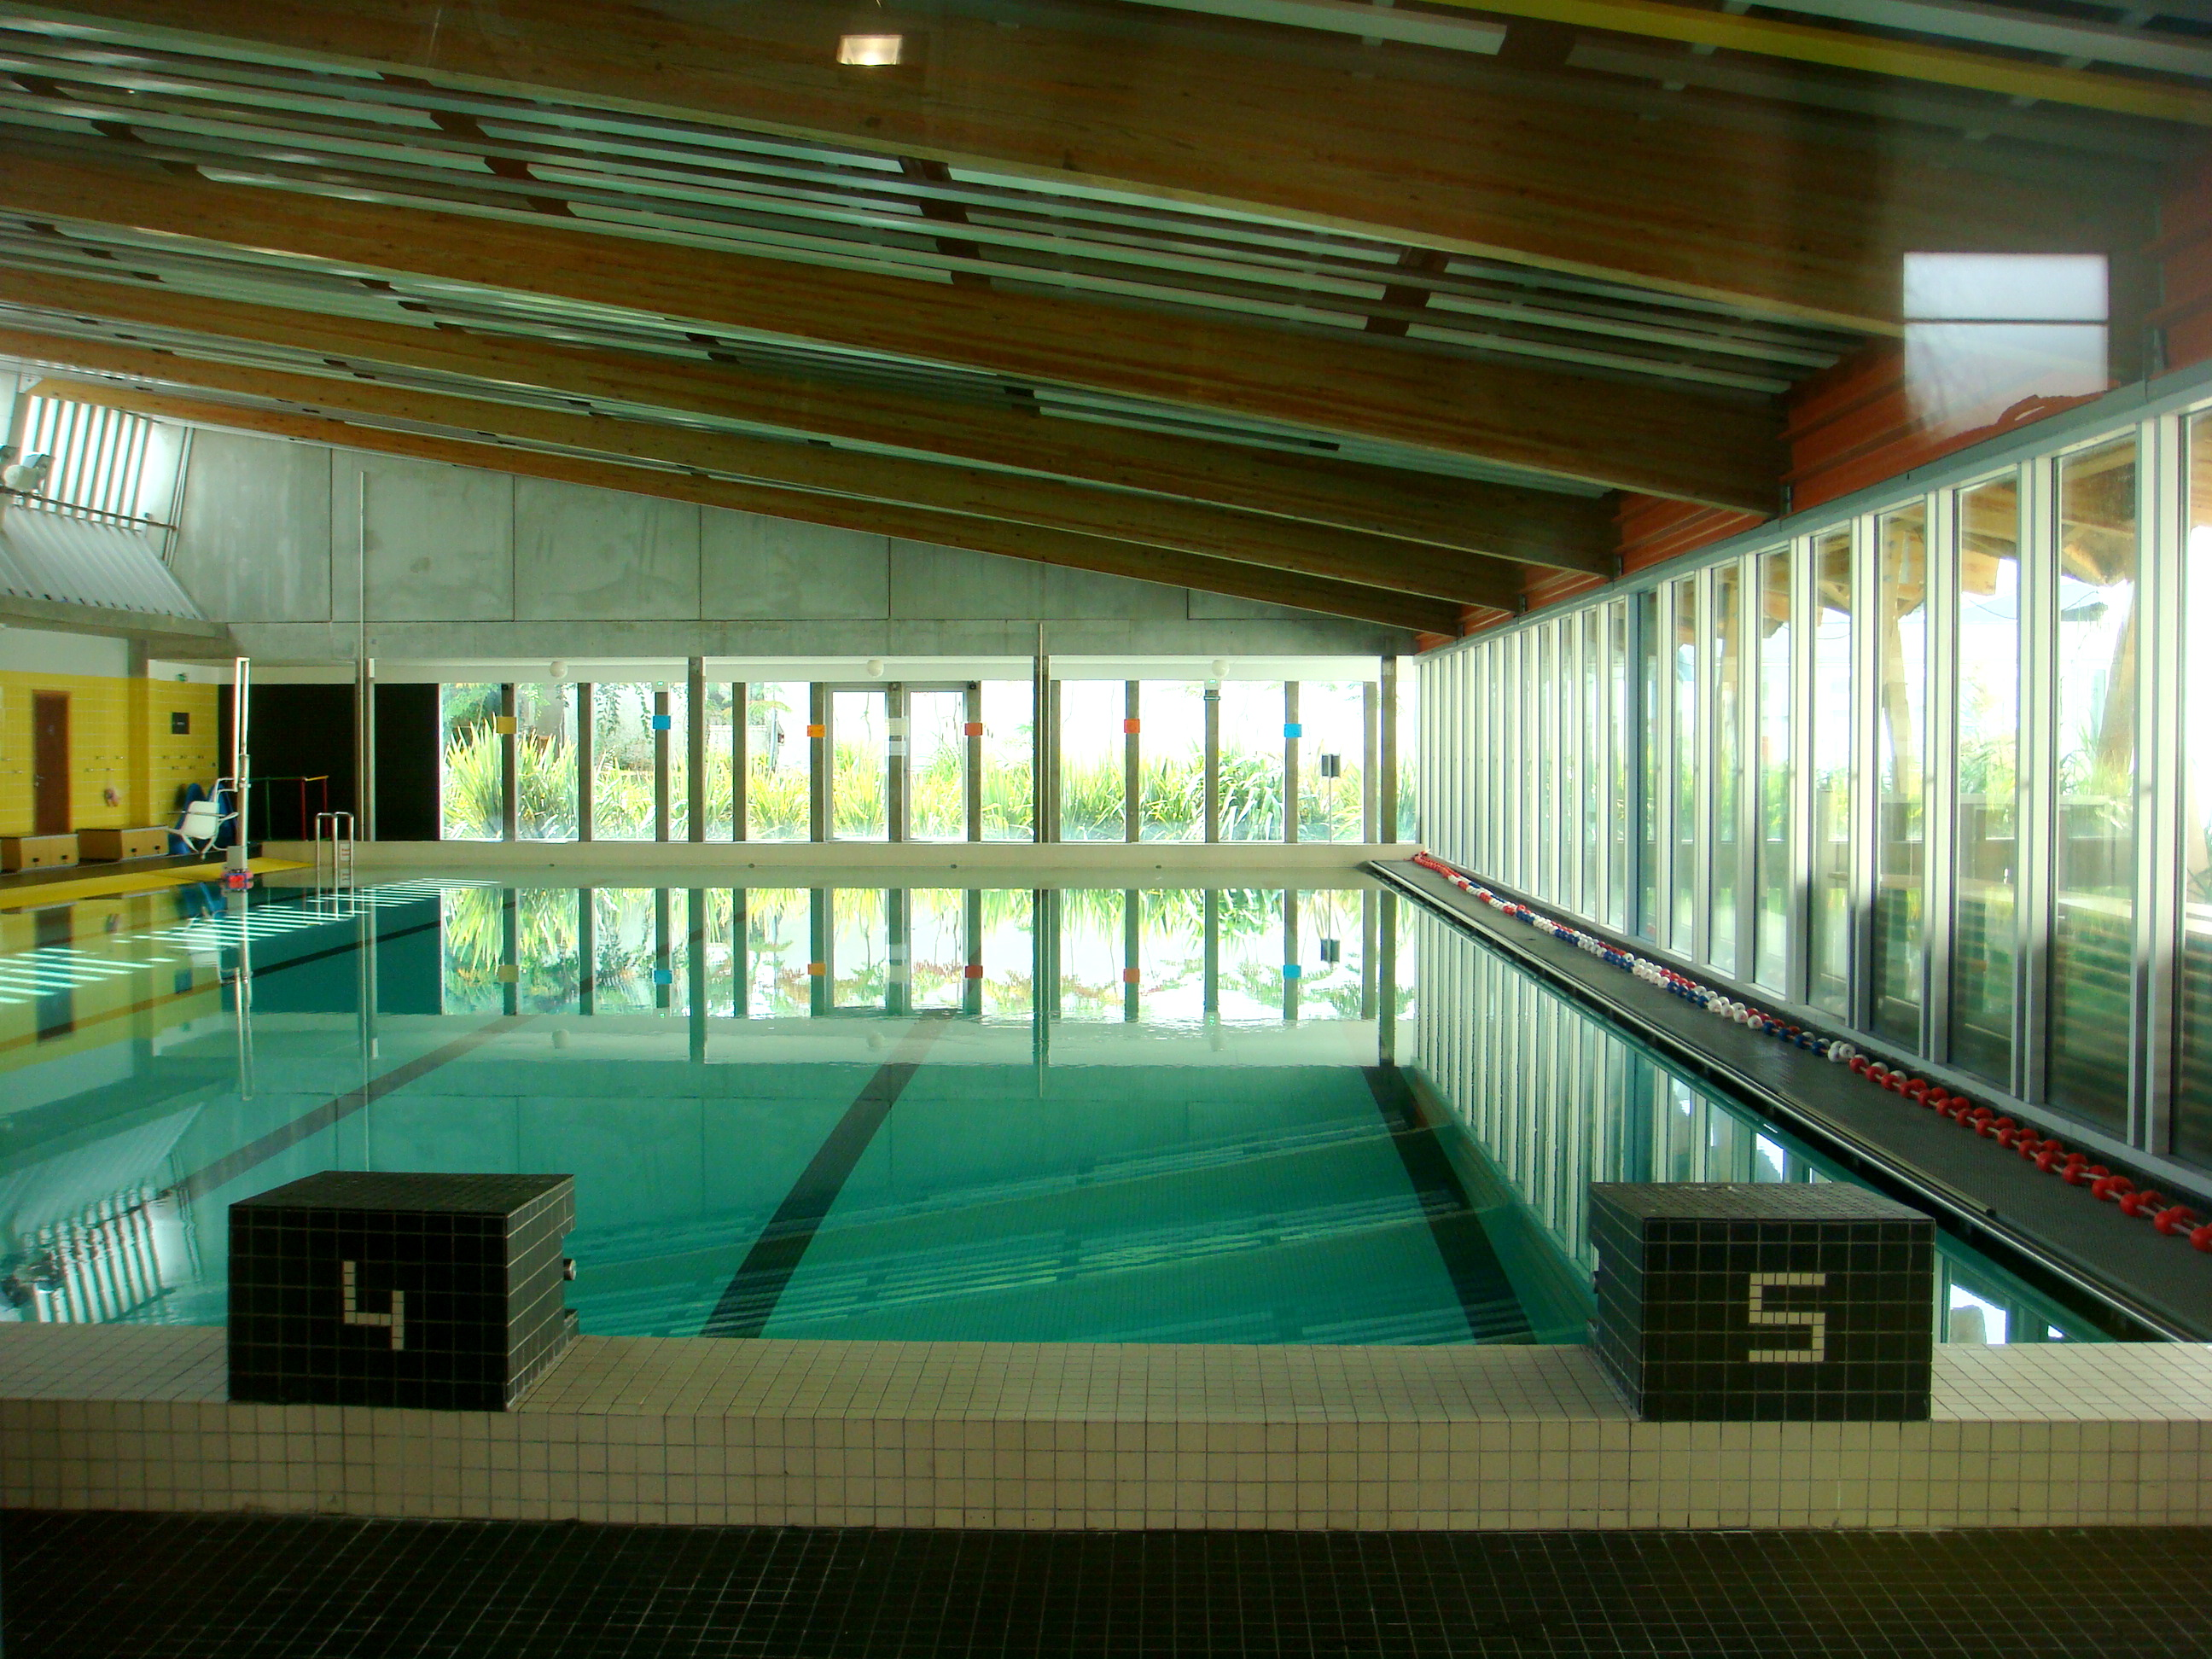 File piscine b gles int wikimedia commons - Piscine municipale begles ...